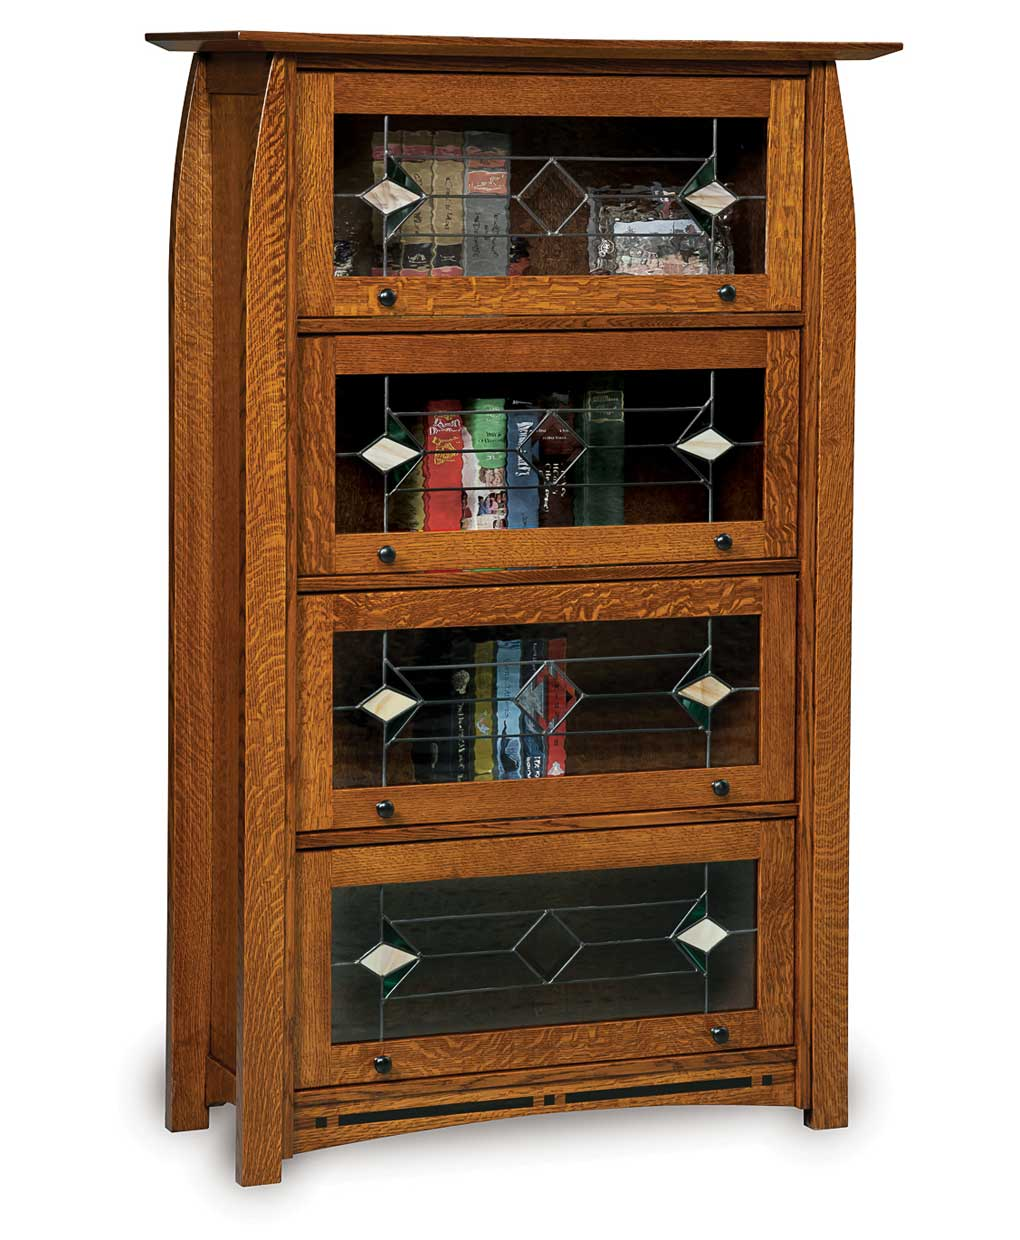 Boulder Creek Barrister Bookcase Amish Direct Furniture